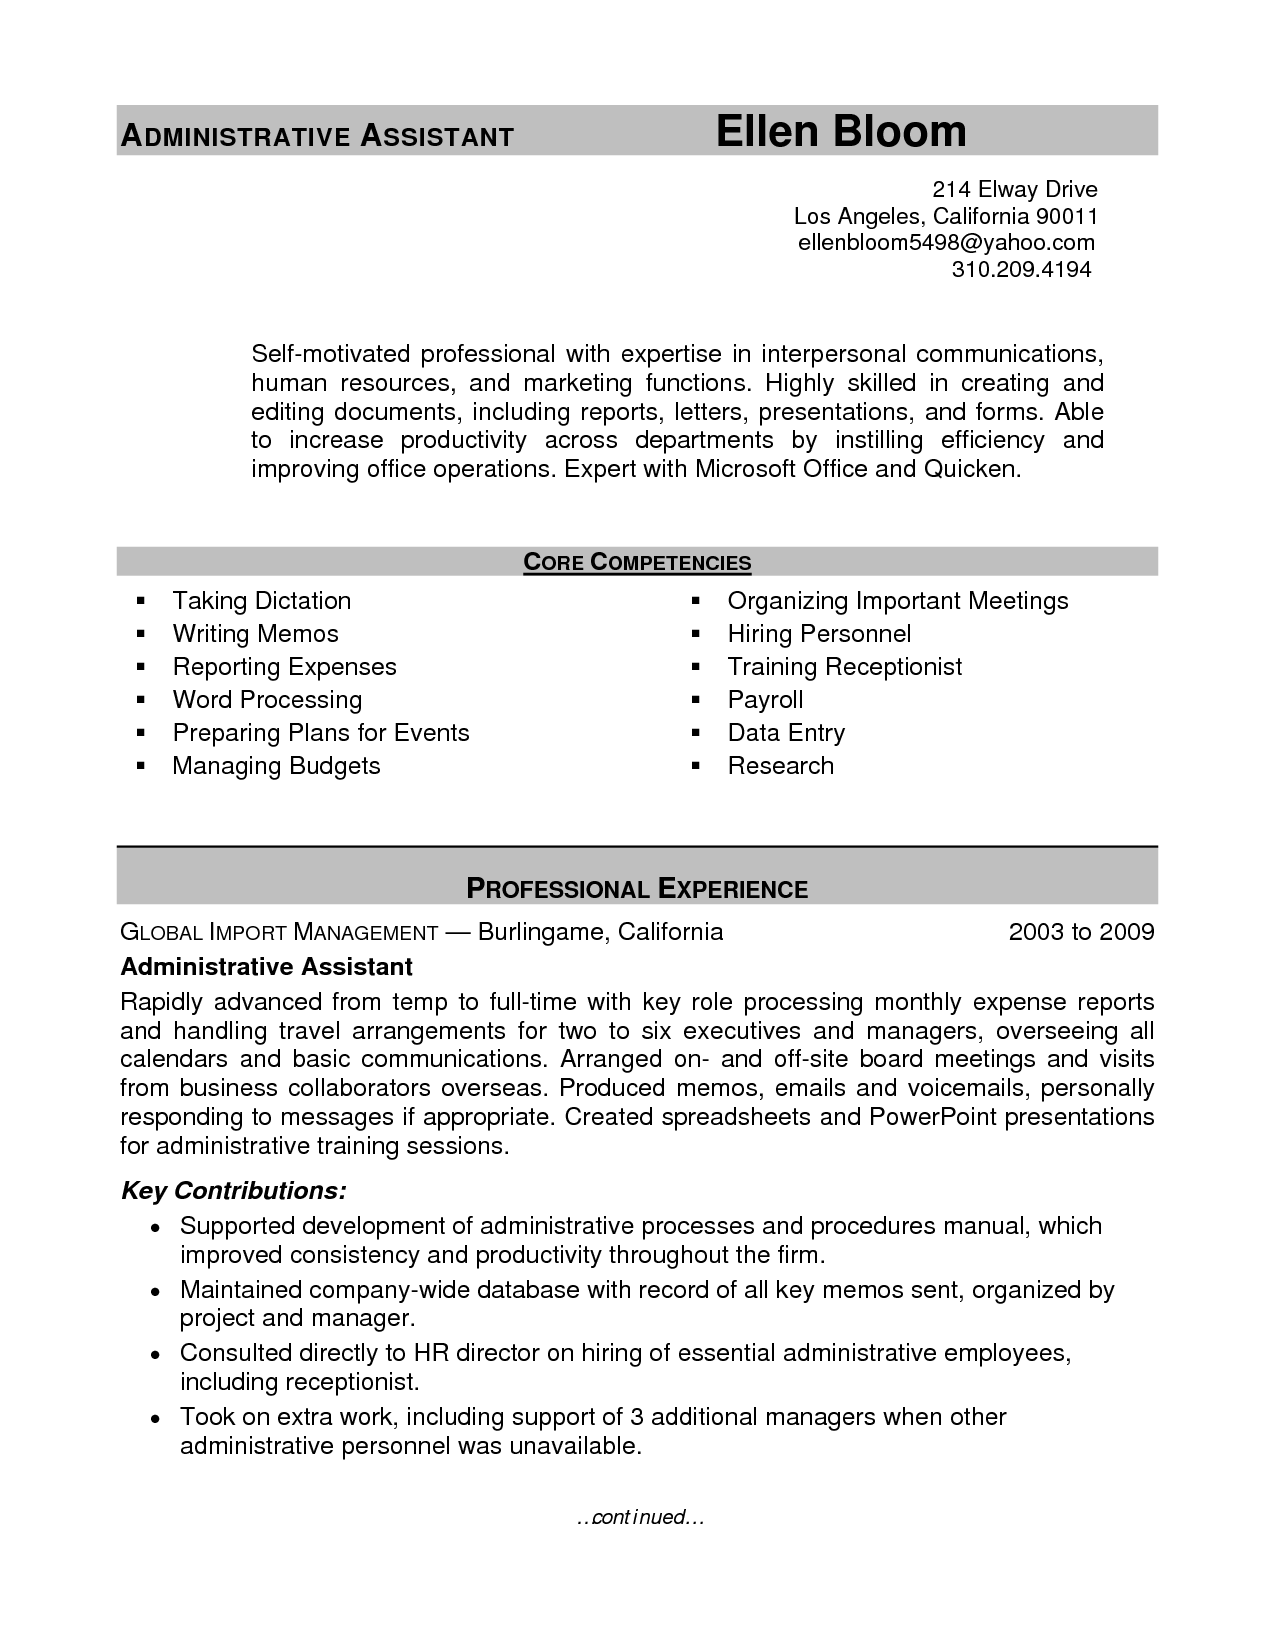 imagerackus scenic best resume examples for your job search administrative assistant functional disposition photo gallery